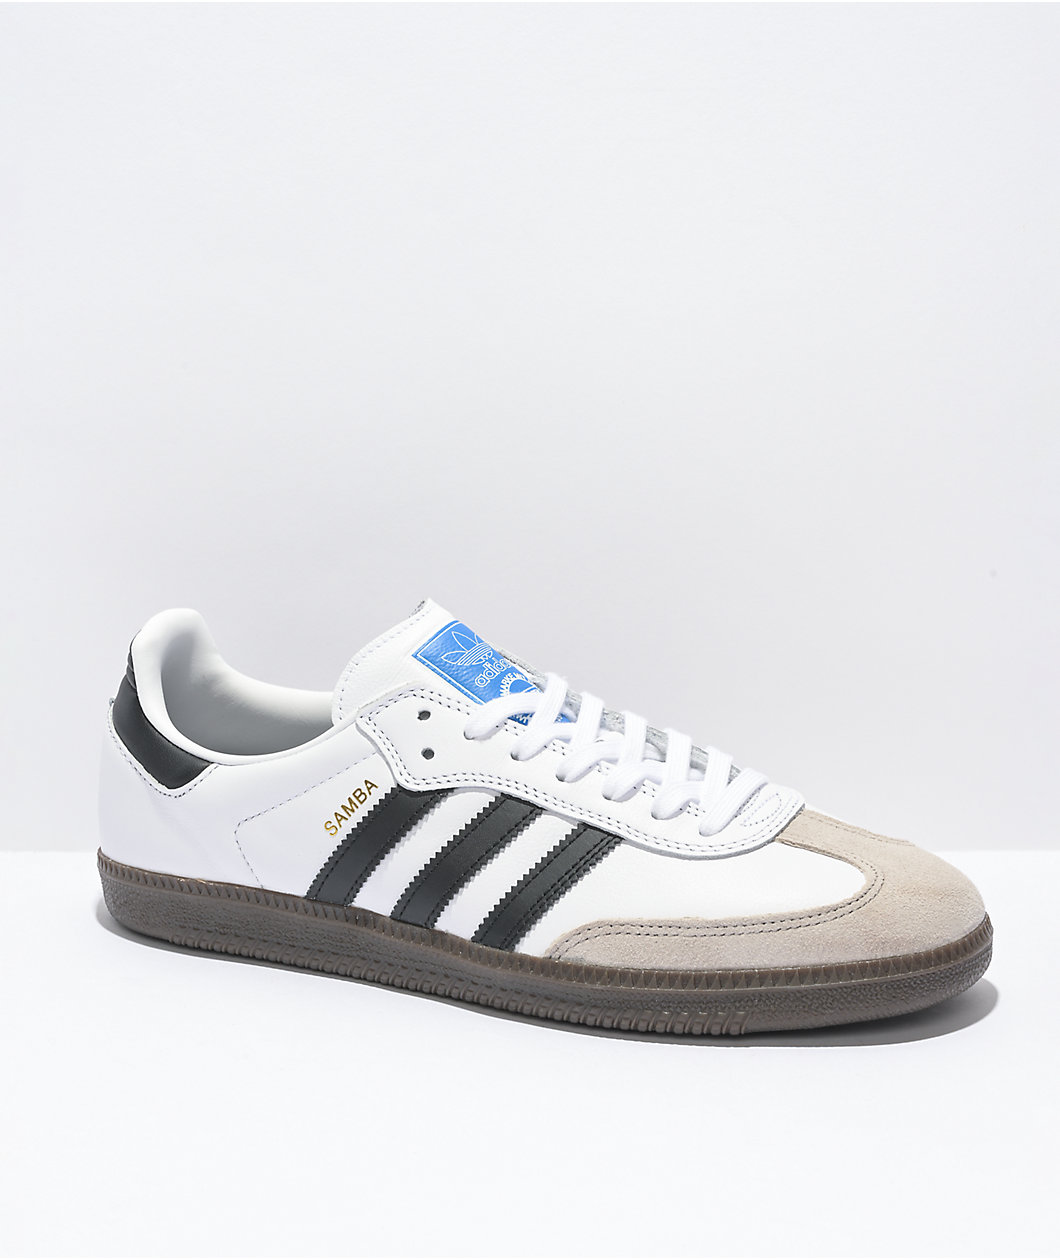 Samba White, Black & Gum Shoes by adidas, available on zumiez.com for $79.95 Bella Hadid Shoes Exact Product